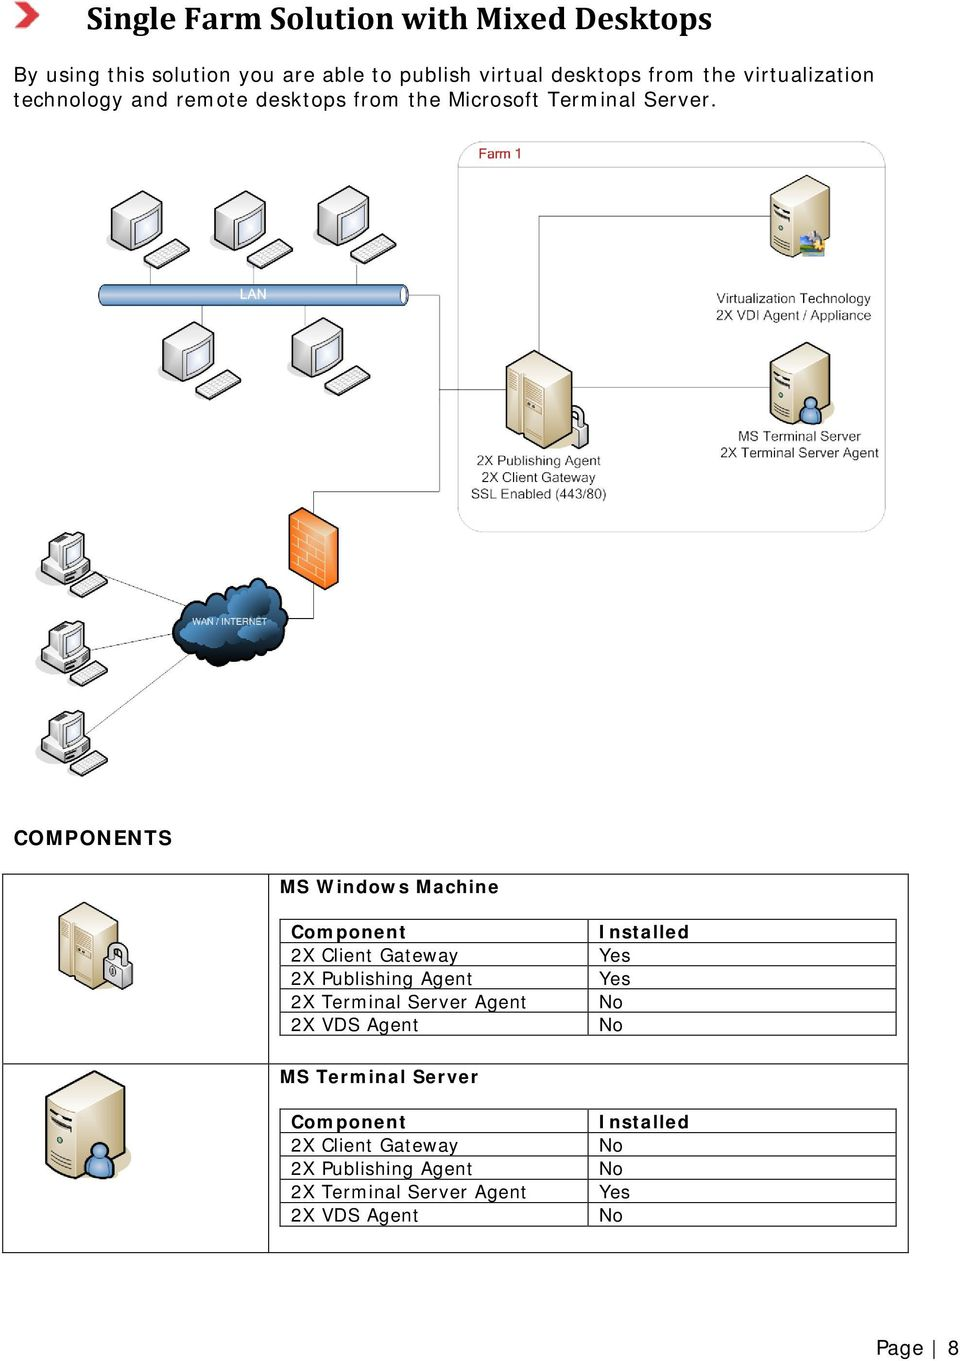 virtualization technology and remote desktops from the